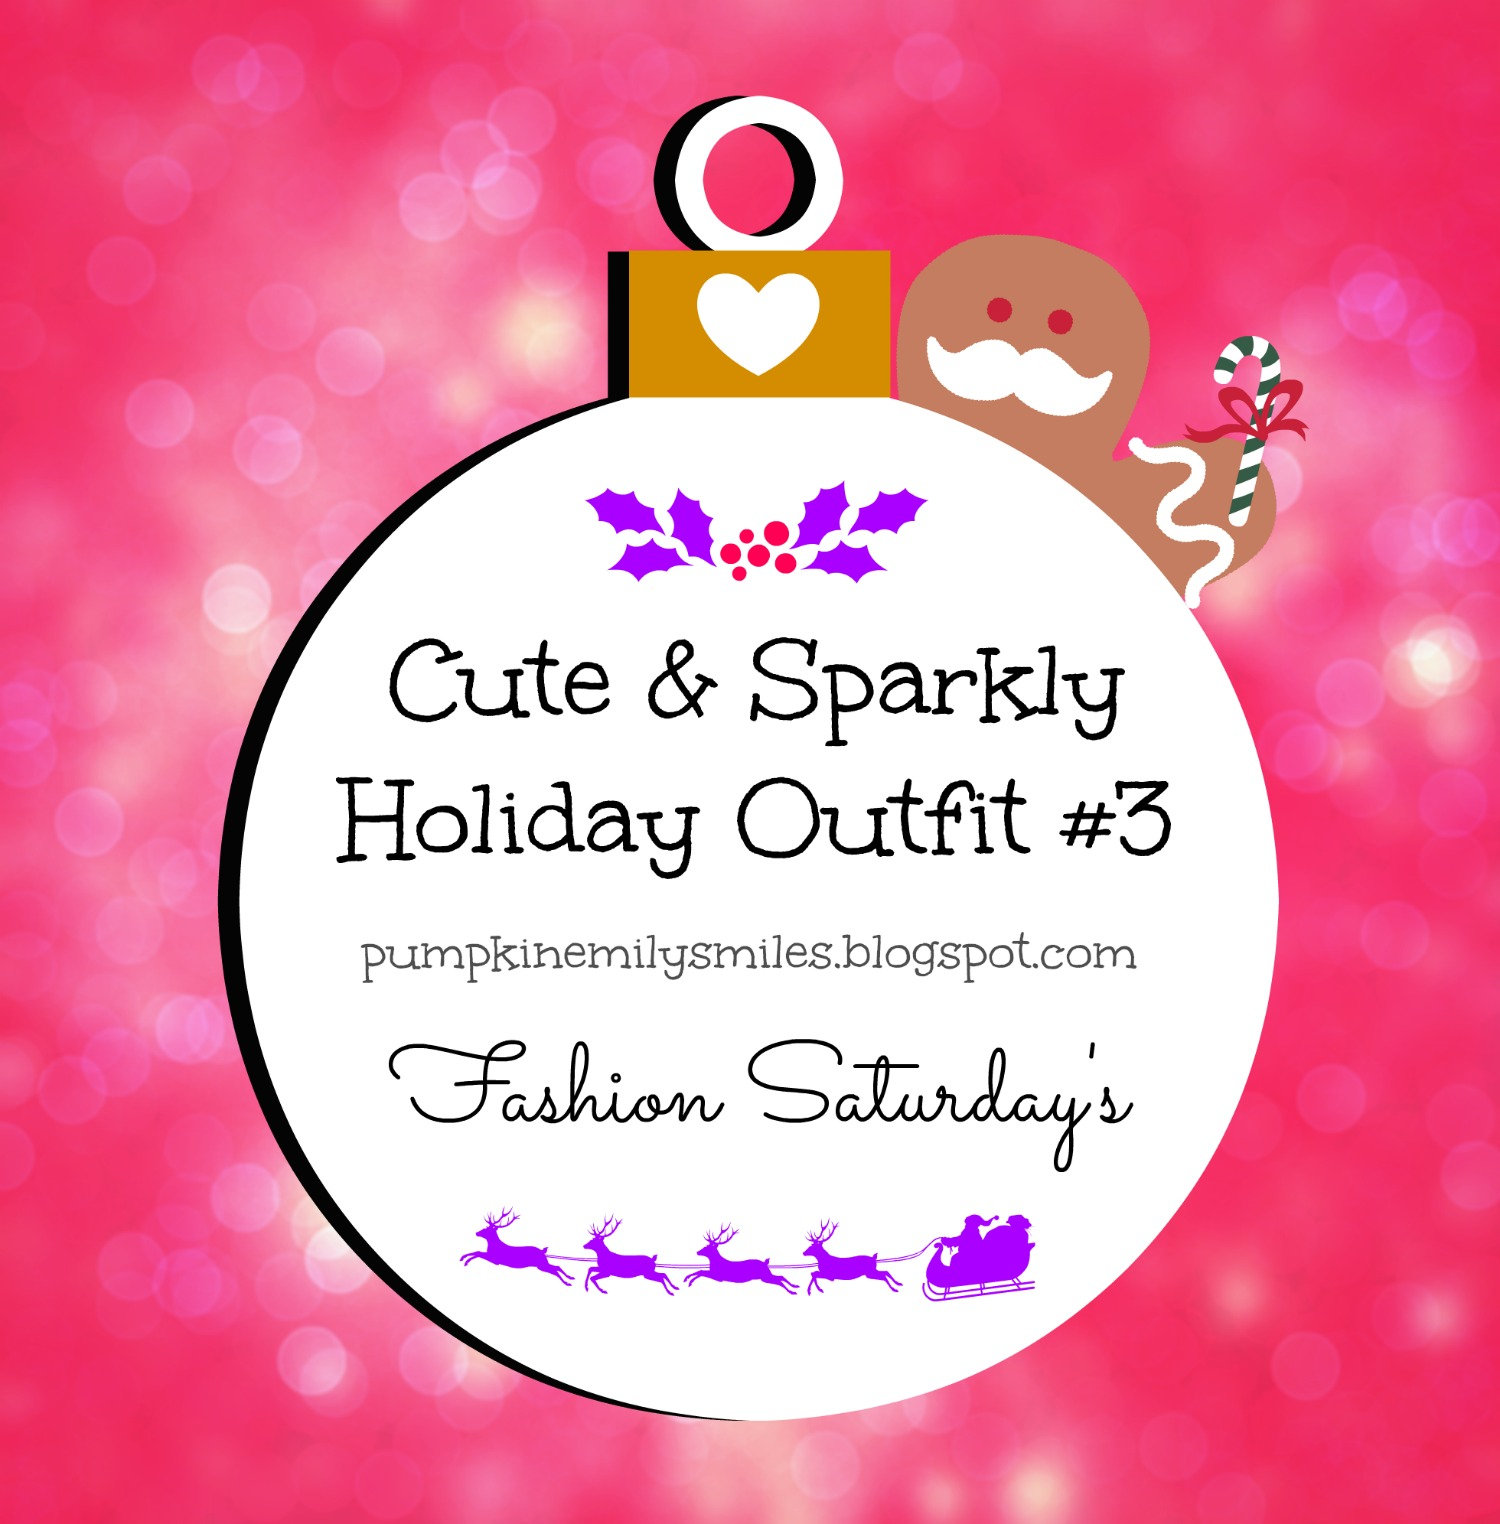 Cute & Sparkly Holiday Outfit #3 Fashion Saturday's